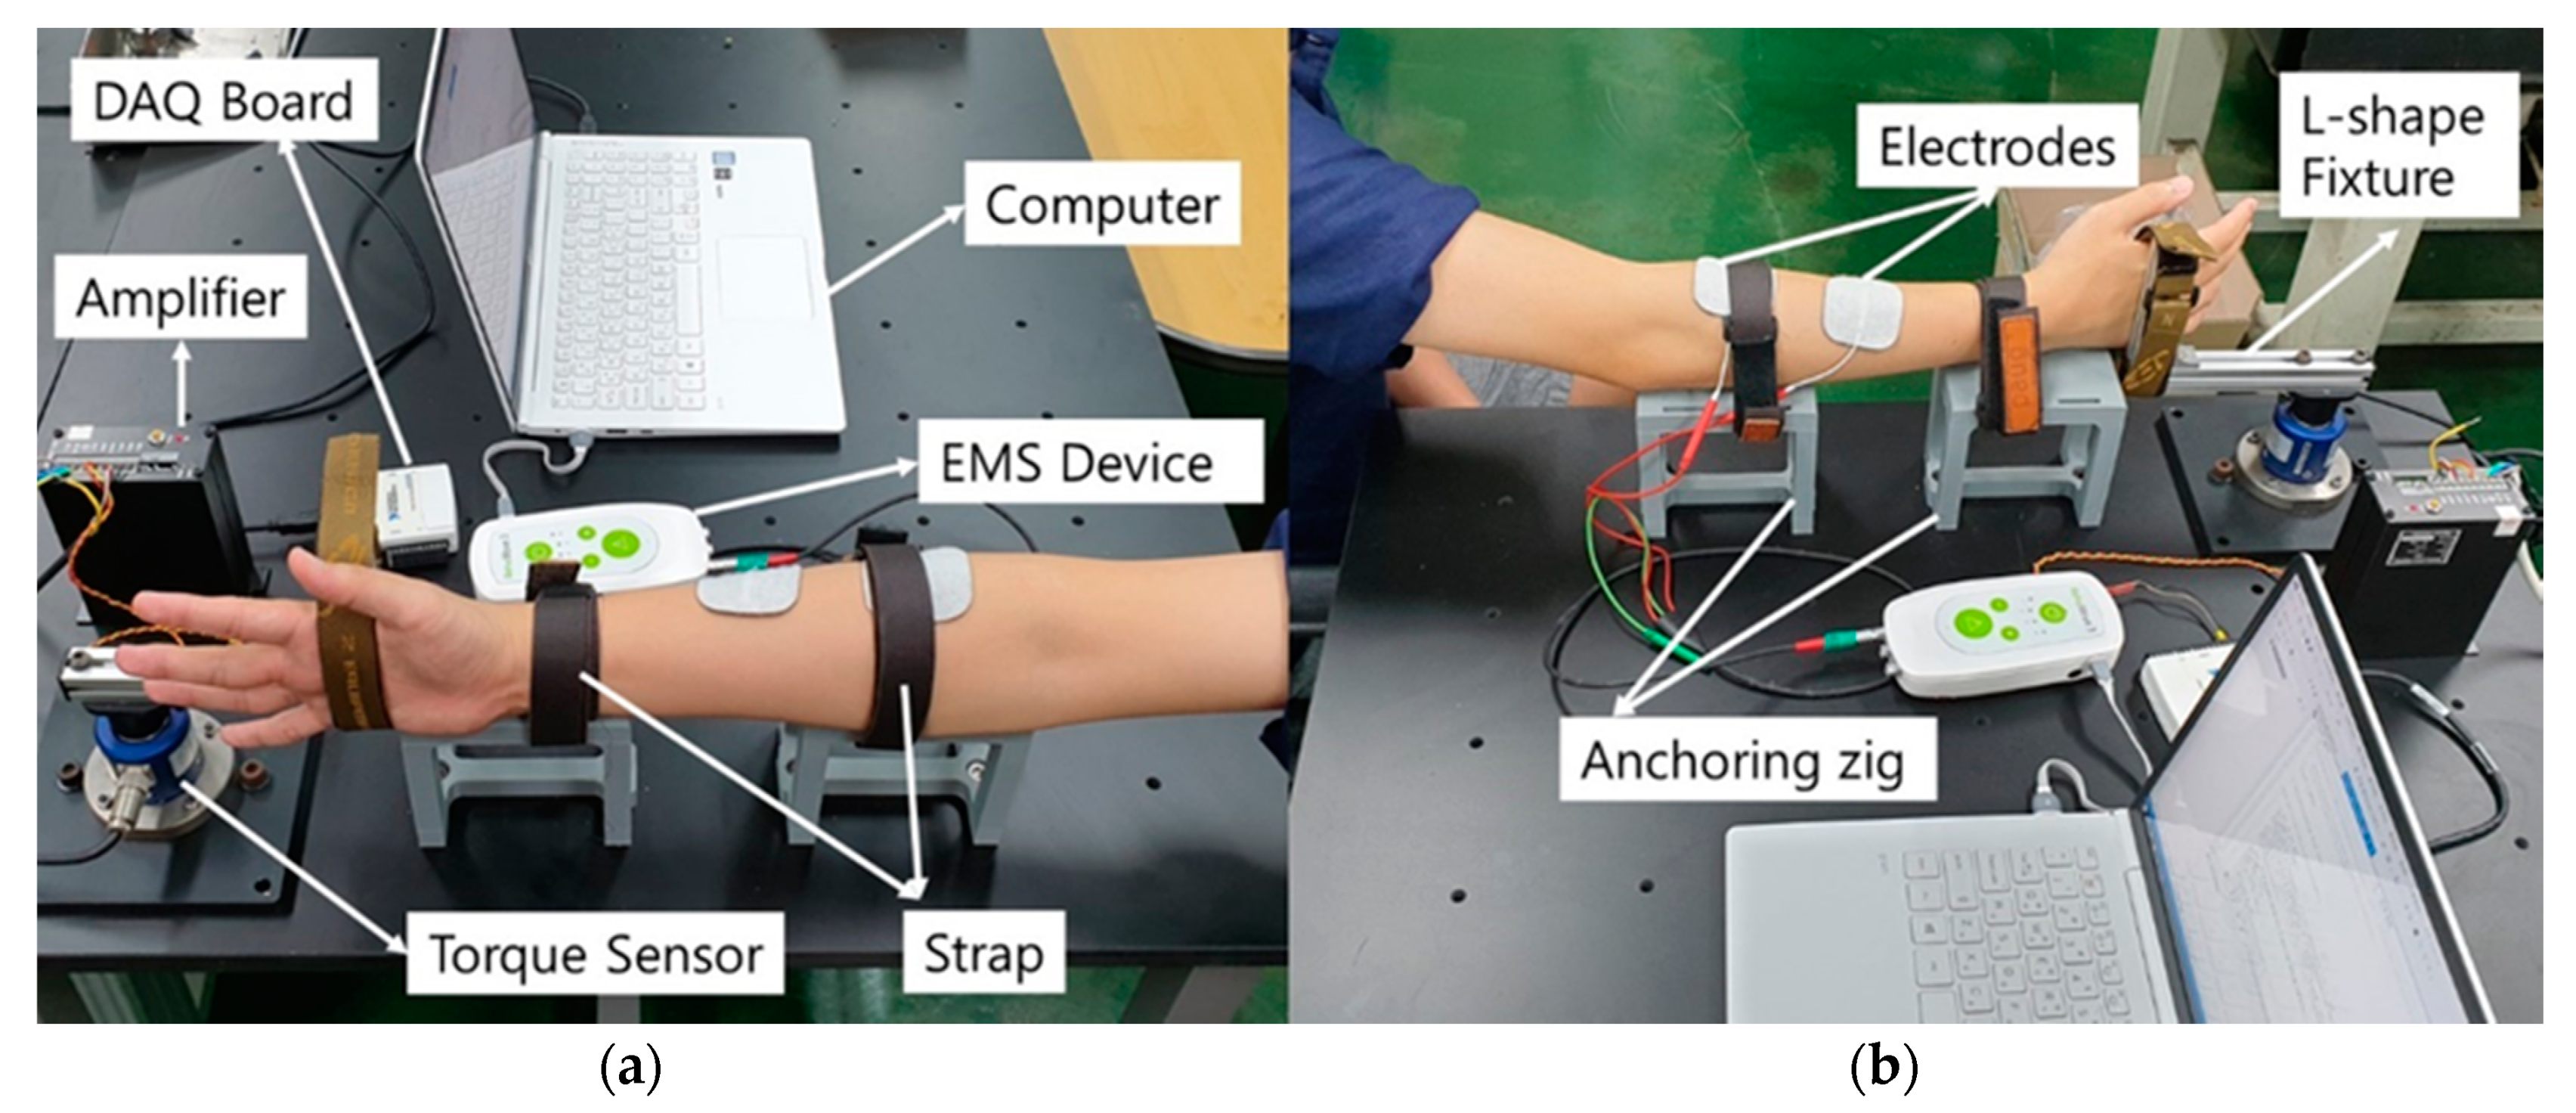 Sensors | Free Full-Text | Electrically Elicited Force Response  Characteristics of Forearm Extensor Muscles for Electrical Muscle  Stimulation-Based Haptic Rendering | HTML